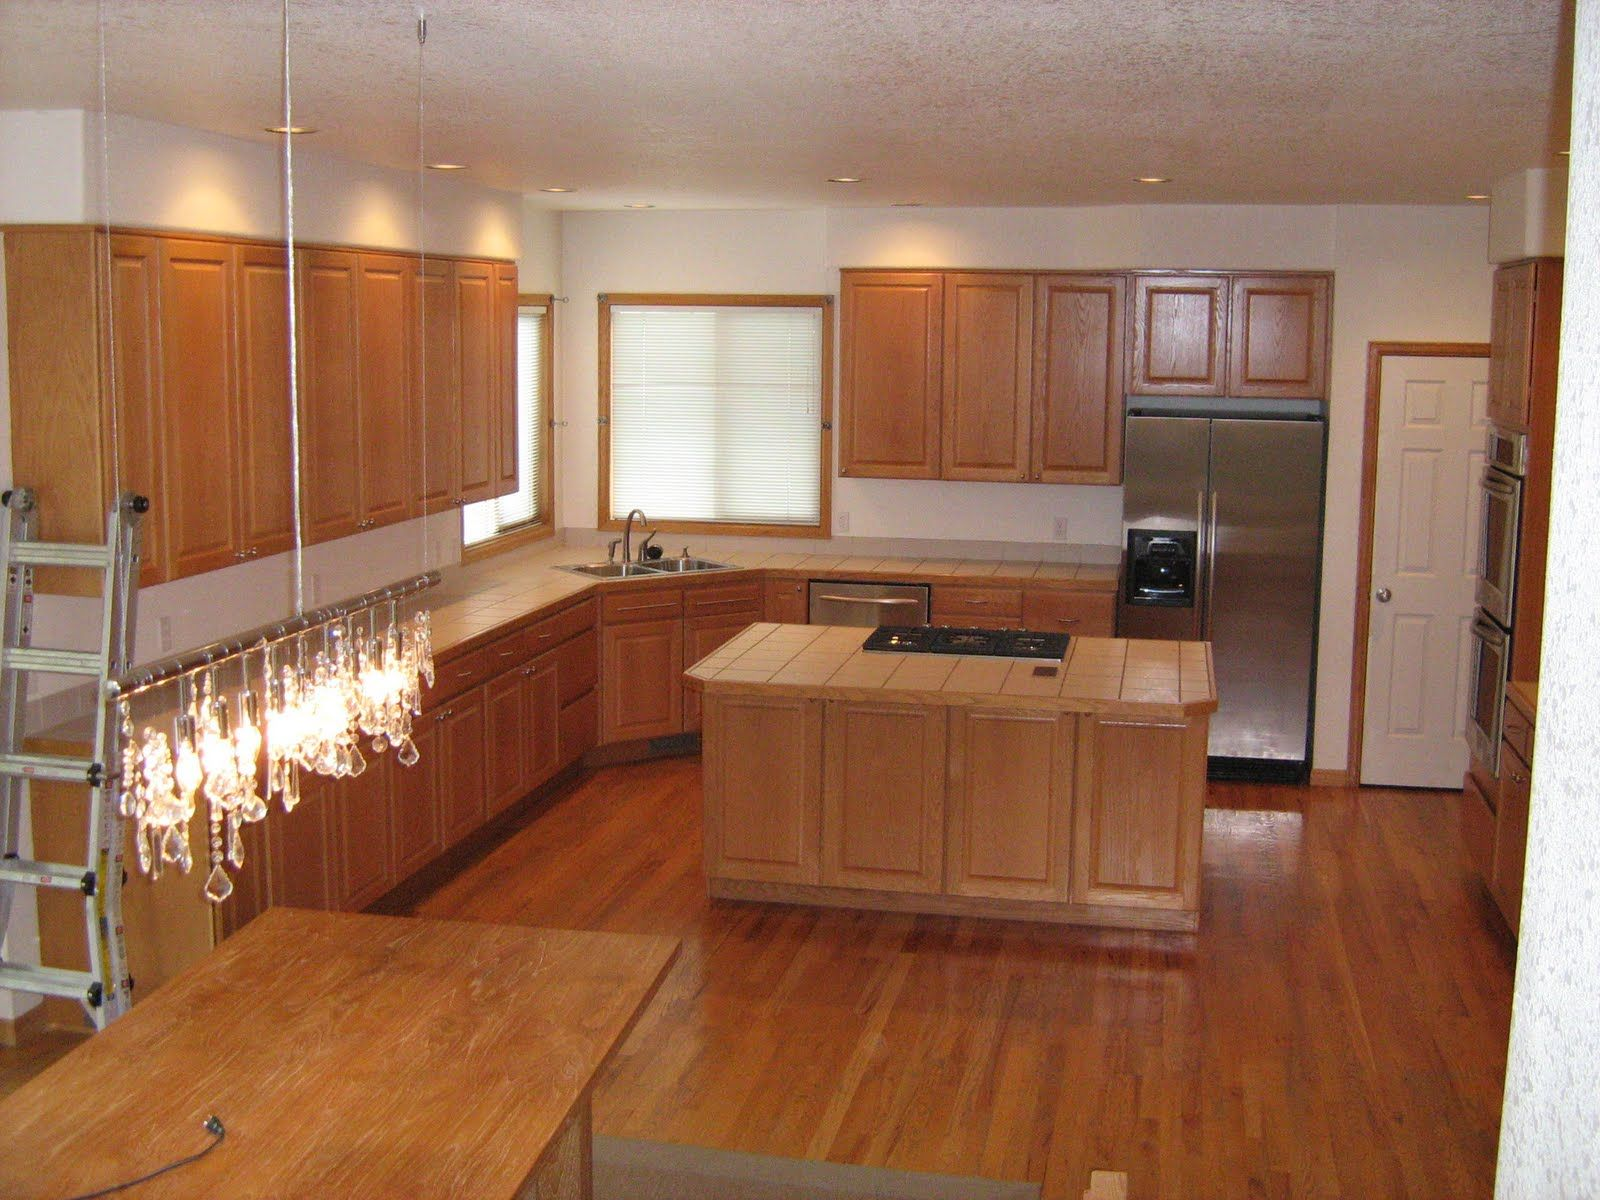 Etonnant Linoleum Flooring With Solid Brown Color As Well As Woods Flooring  Installation In Simplistic Kitchen Image.